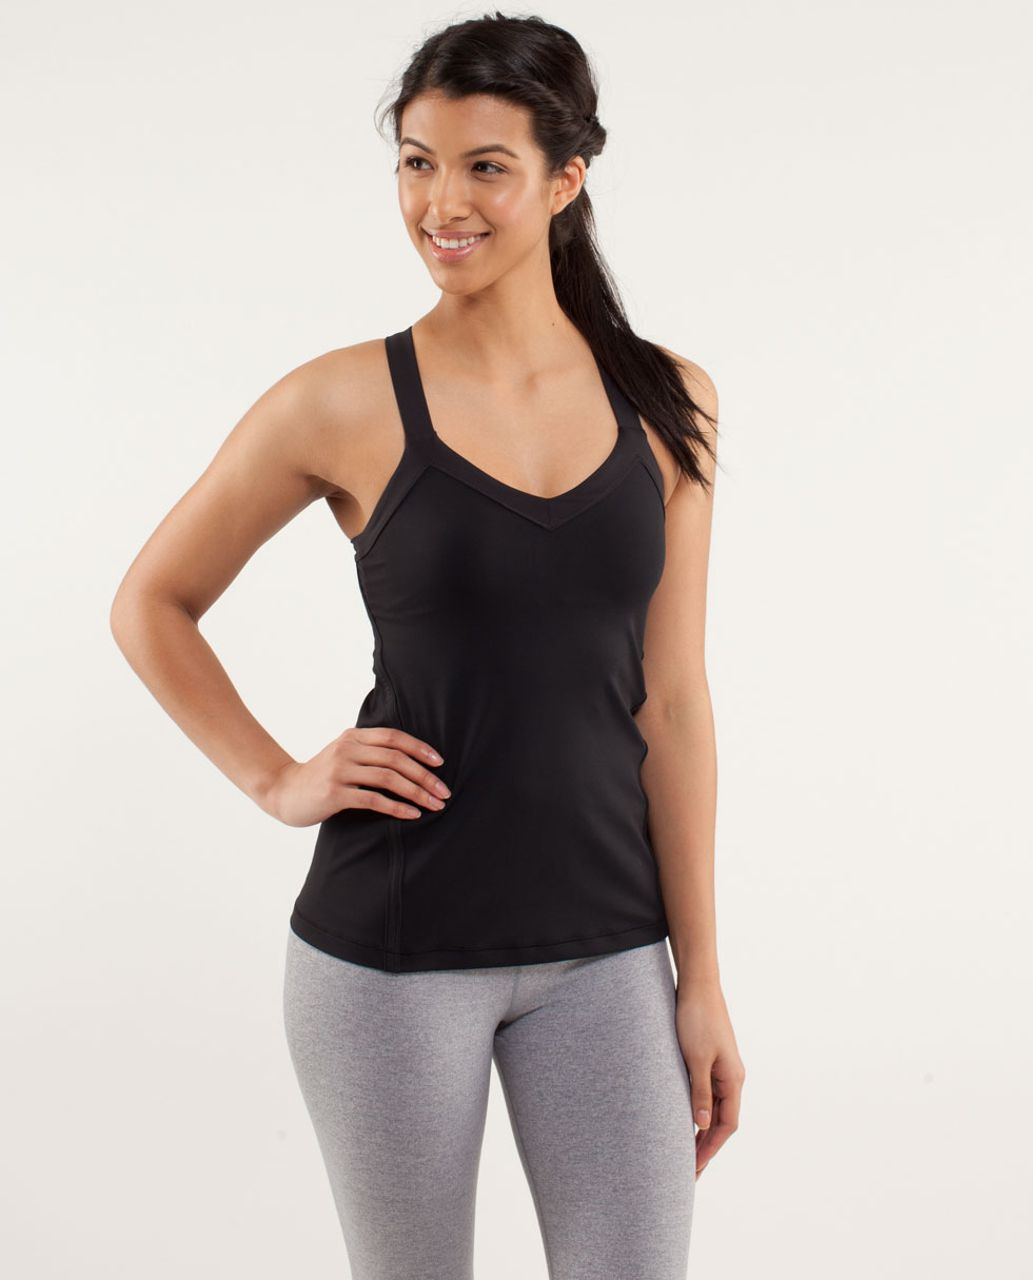 Lululemon Run:  Mile A Minute Tank - Black